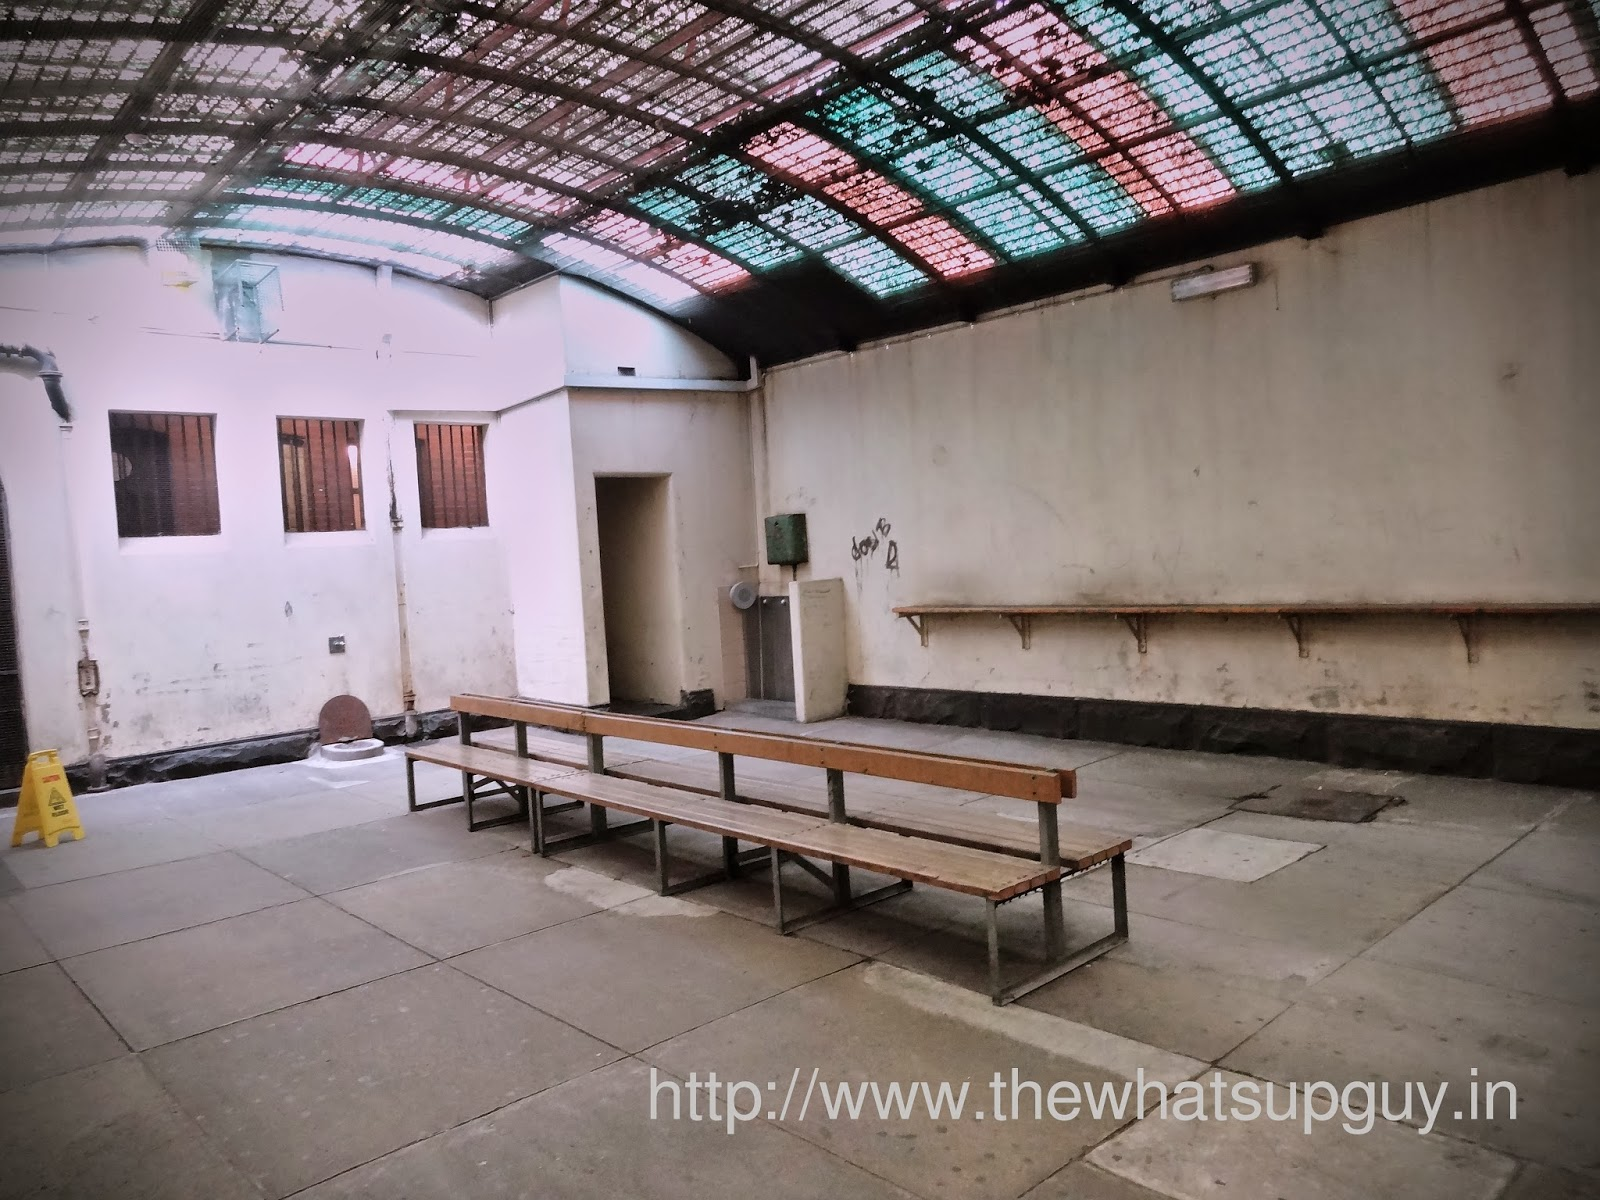 Old Melbourne Gaol Common Area